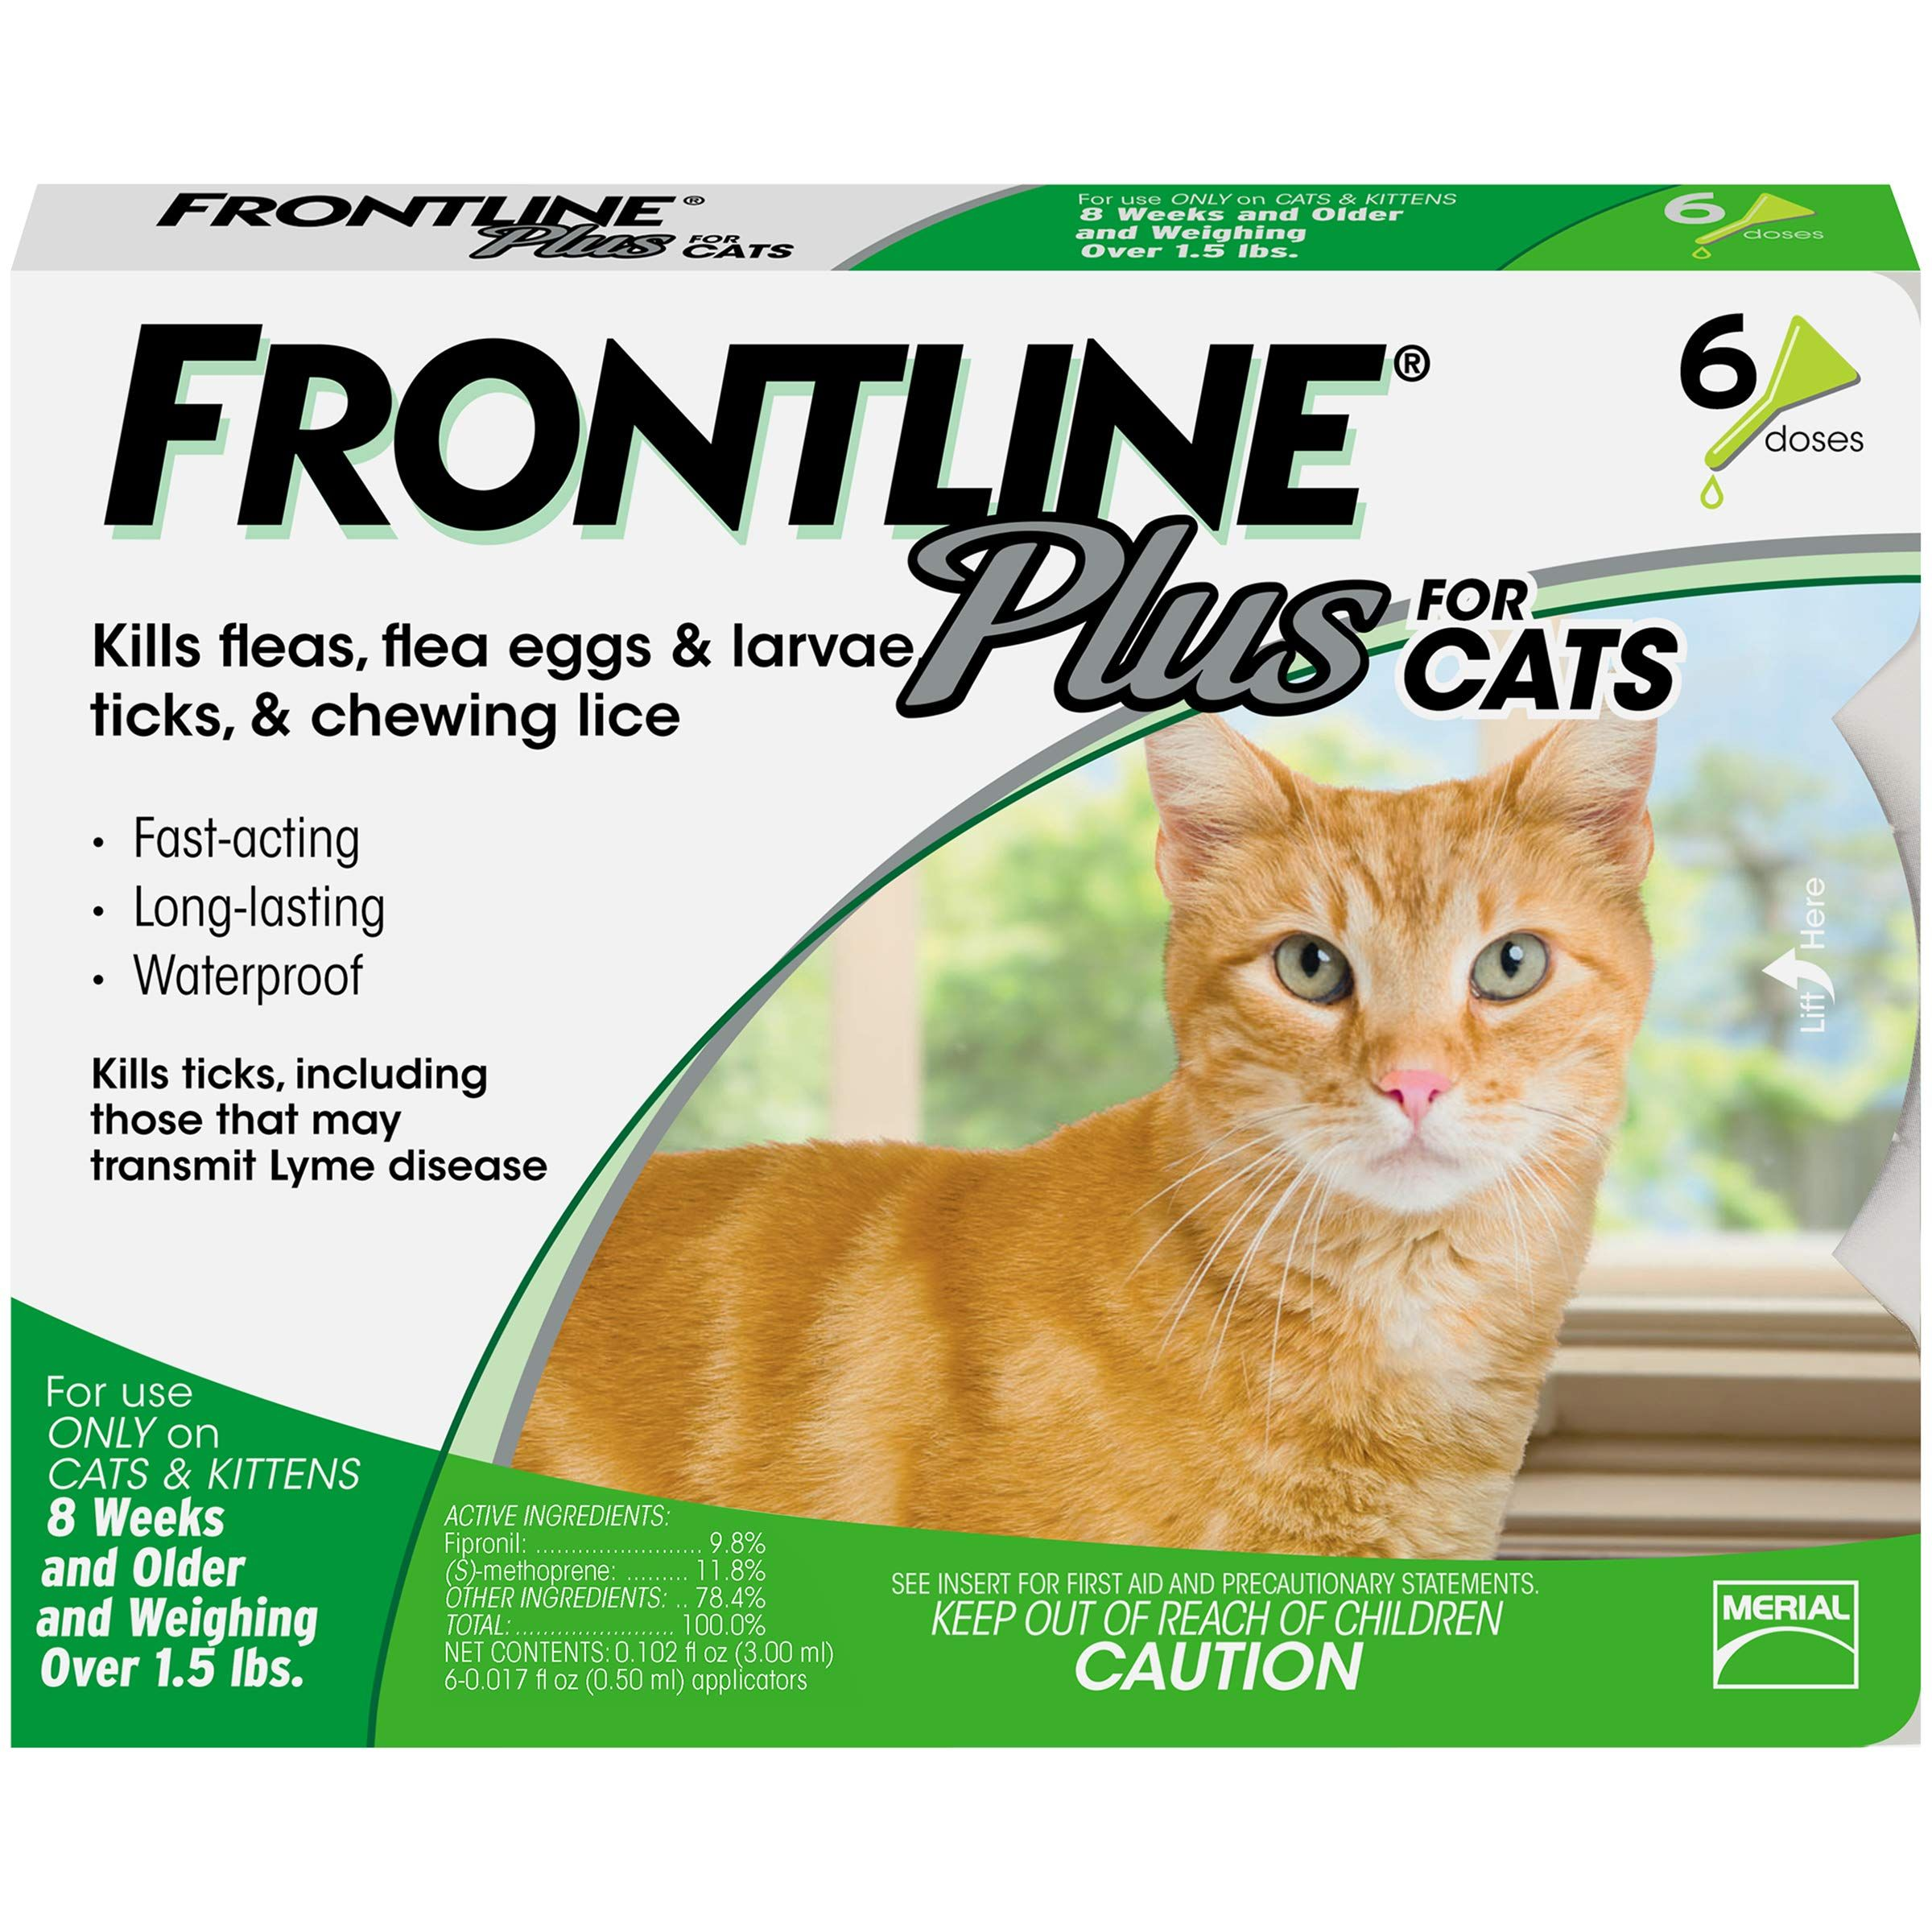 Frontline Plus For Cats 6 Month With Images Frontline Plus For Cats Tick Treatment For Cats Cat Fleas